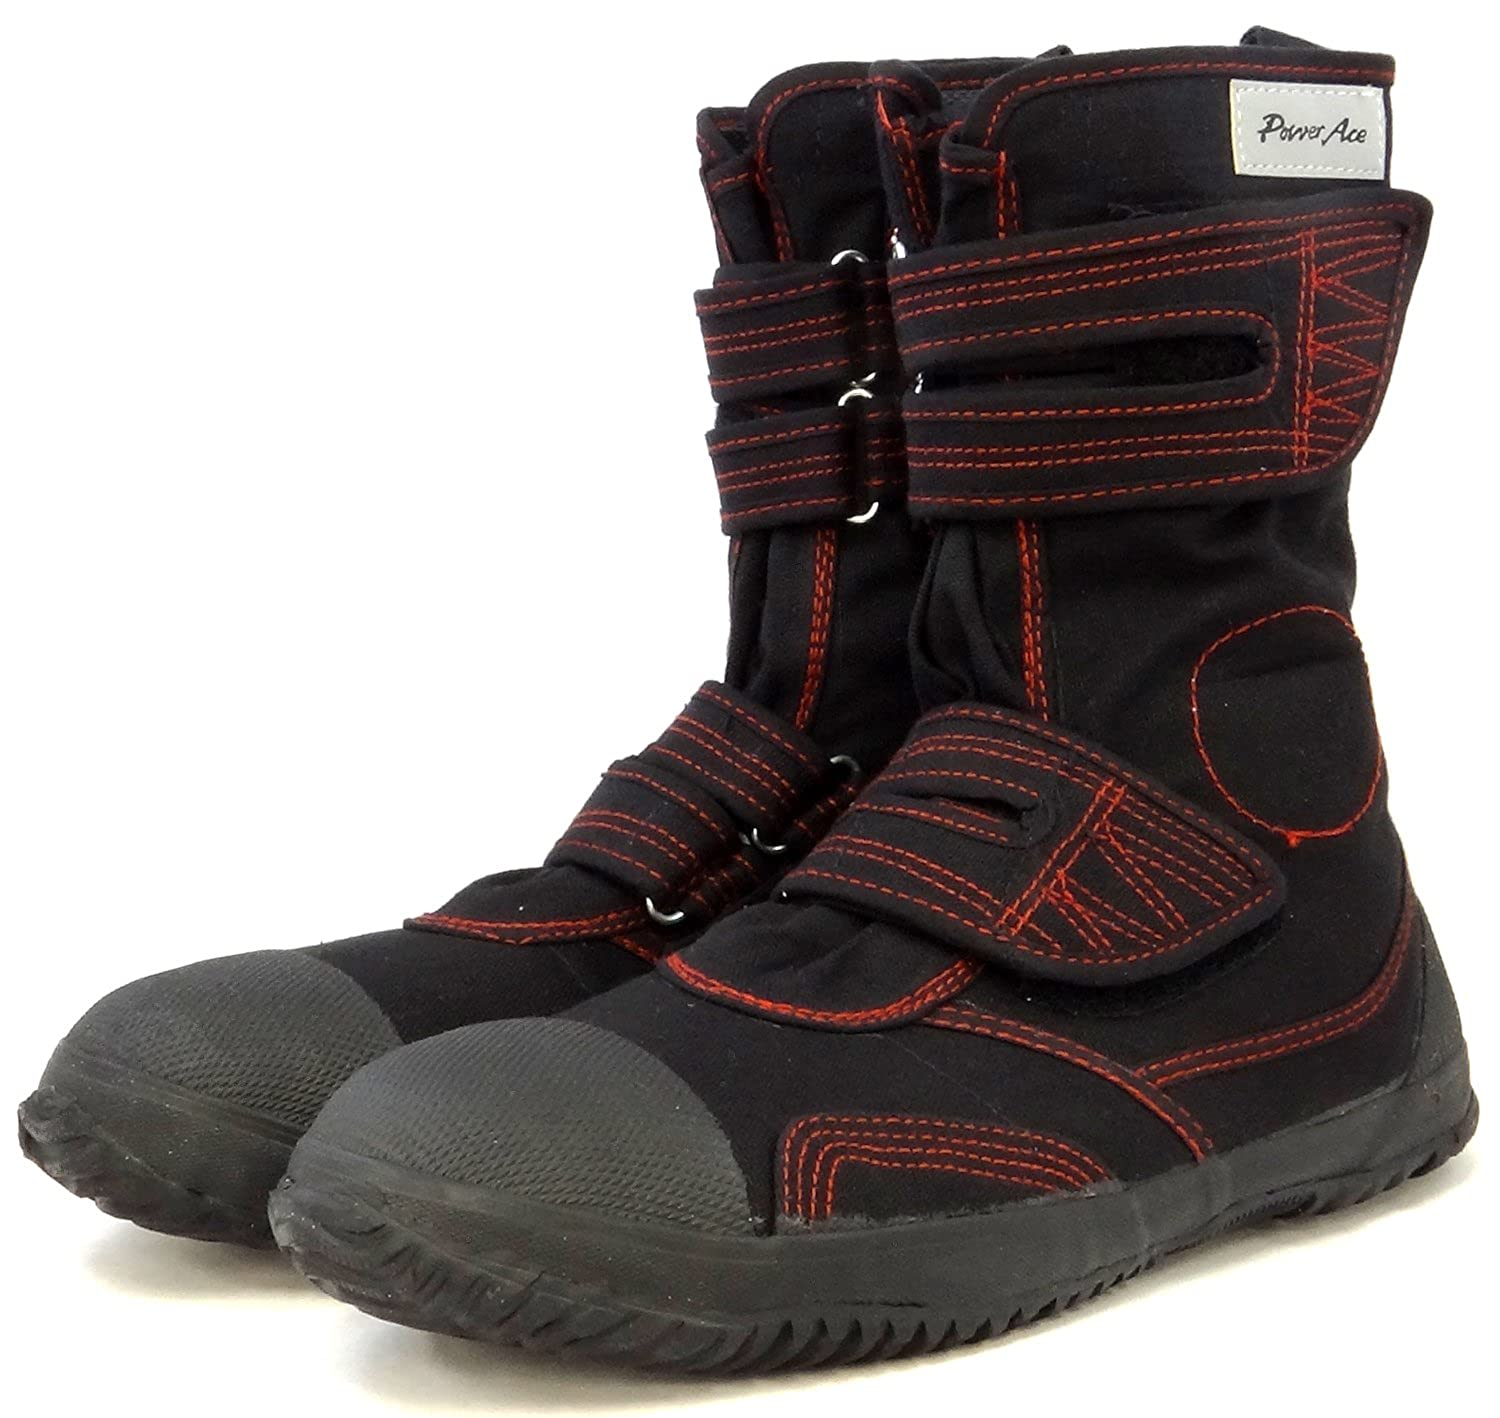 0d3f73e94bb Power Ace Japanese Tabi Safety Boots